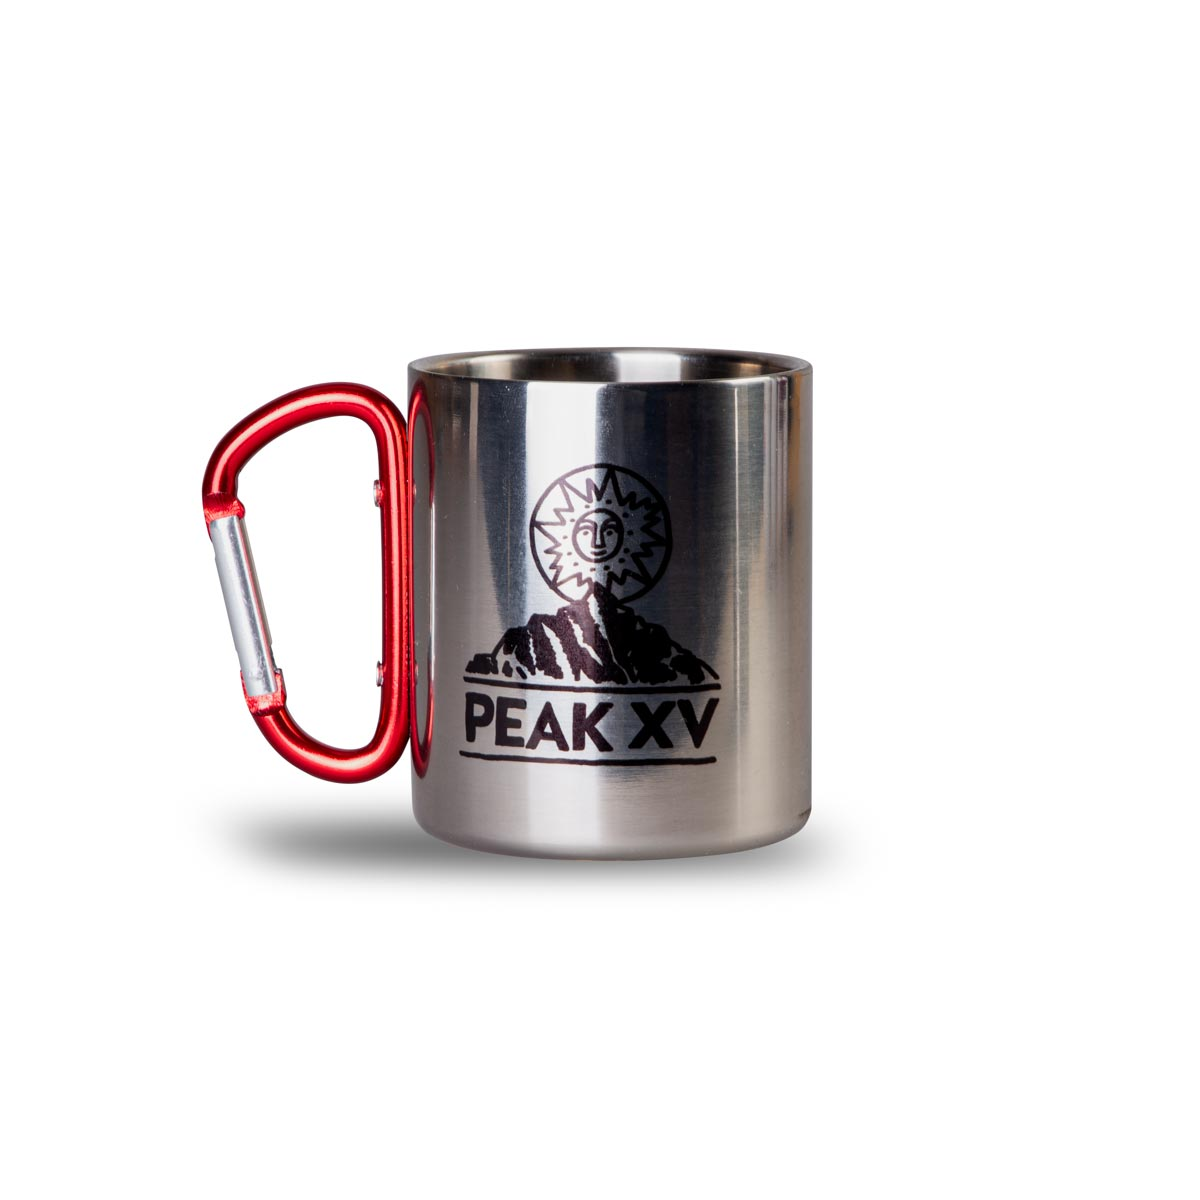 Full Colour Carabiner Mugs